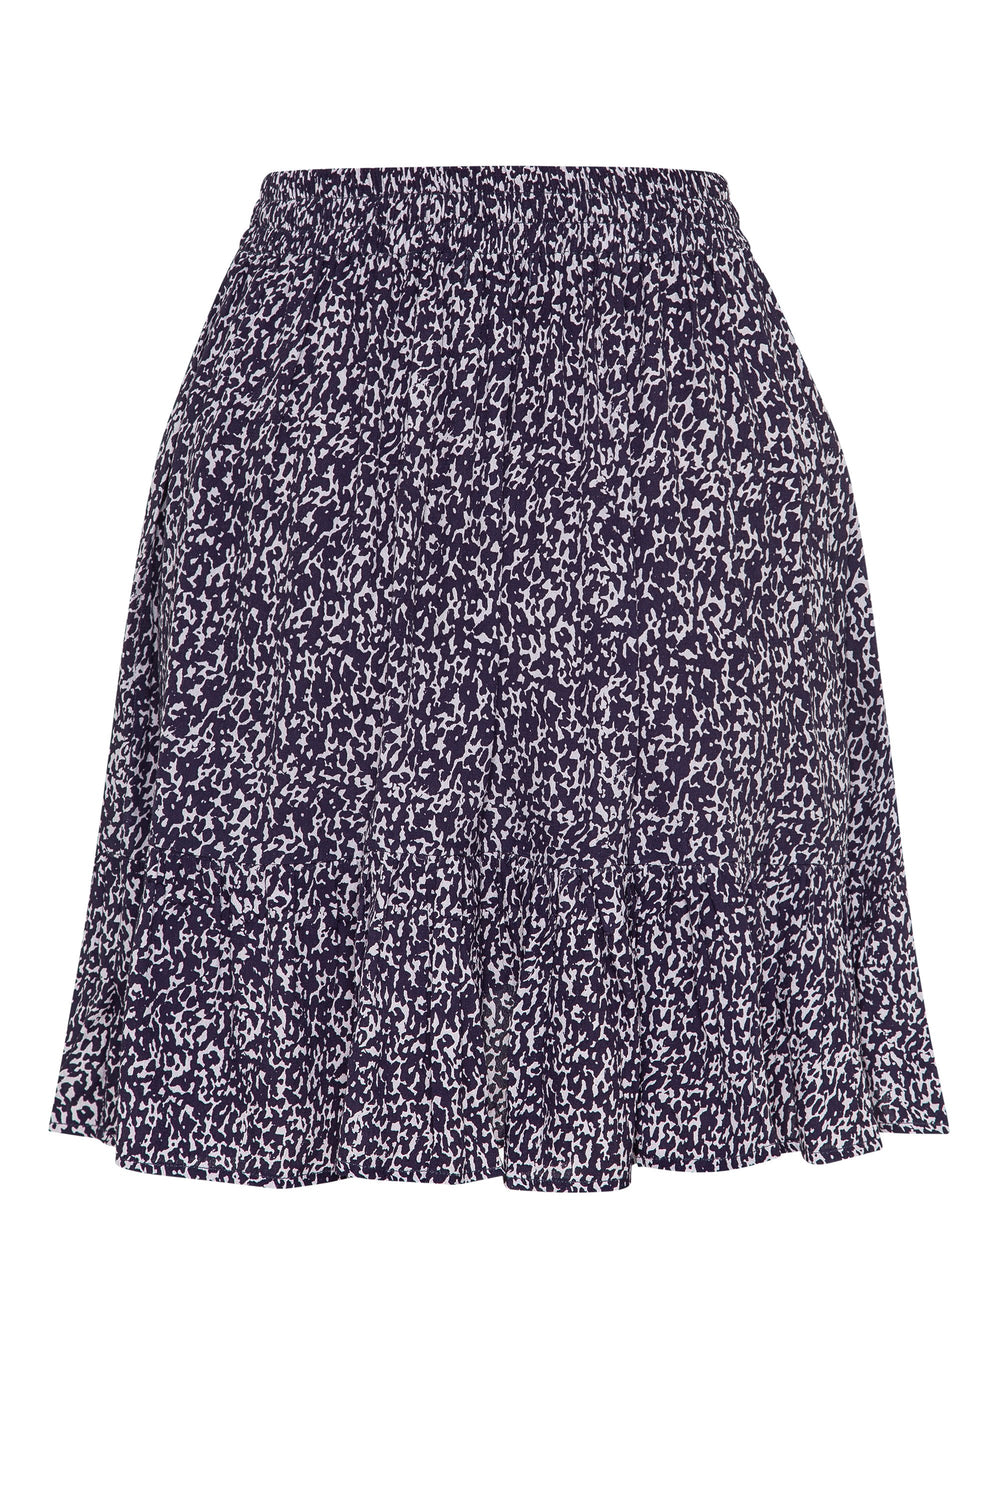 Velvie Skirt In Snow Leopard